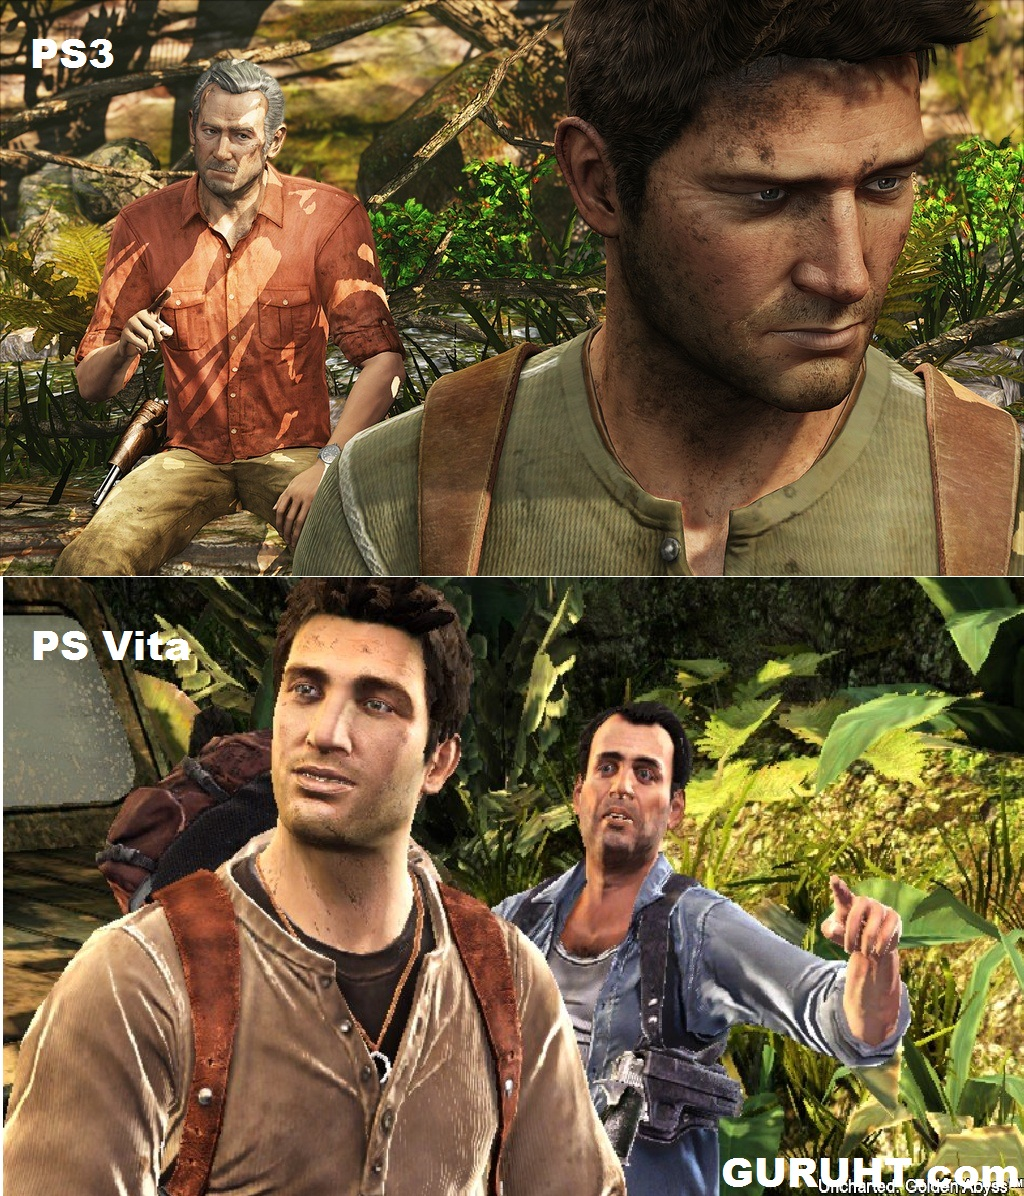 Uncharted Golden Abyss ps Vita Gameplay Uncharted Golden Abyss ps